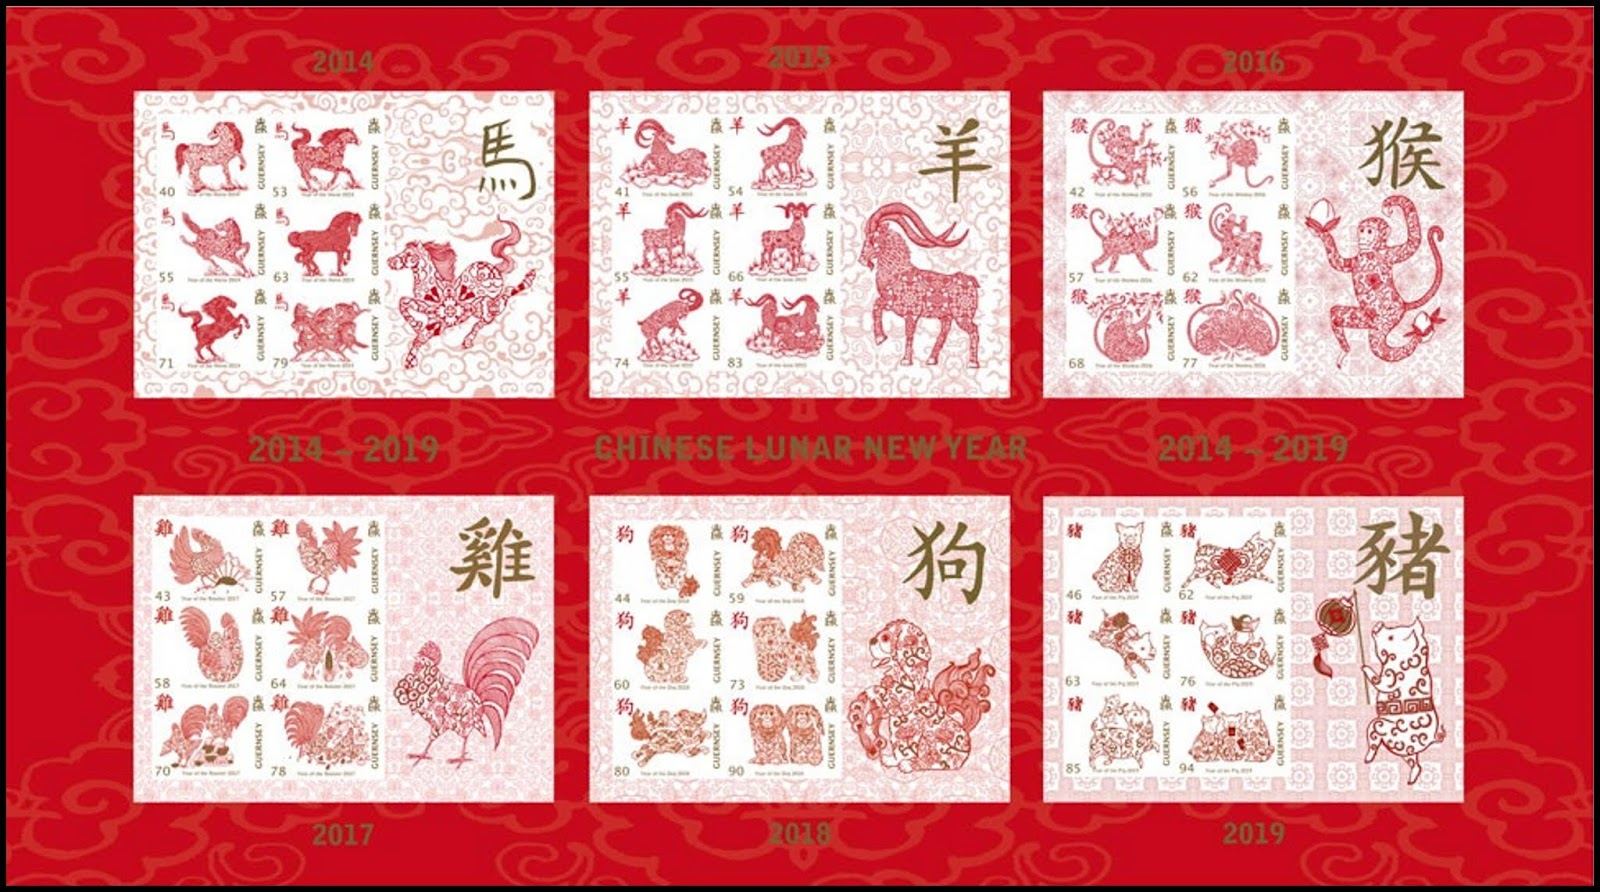 Guernsey - Year of the Pig (January 22, 2019) miniature sheet of 6 (2014-2019)